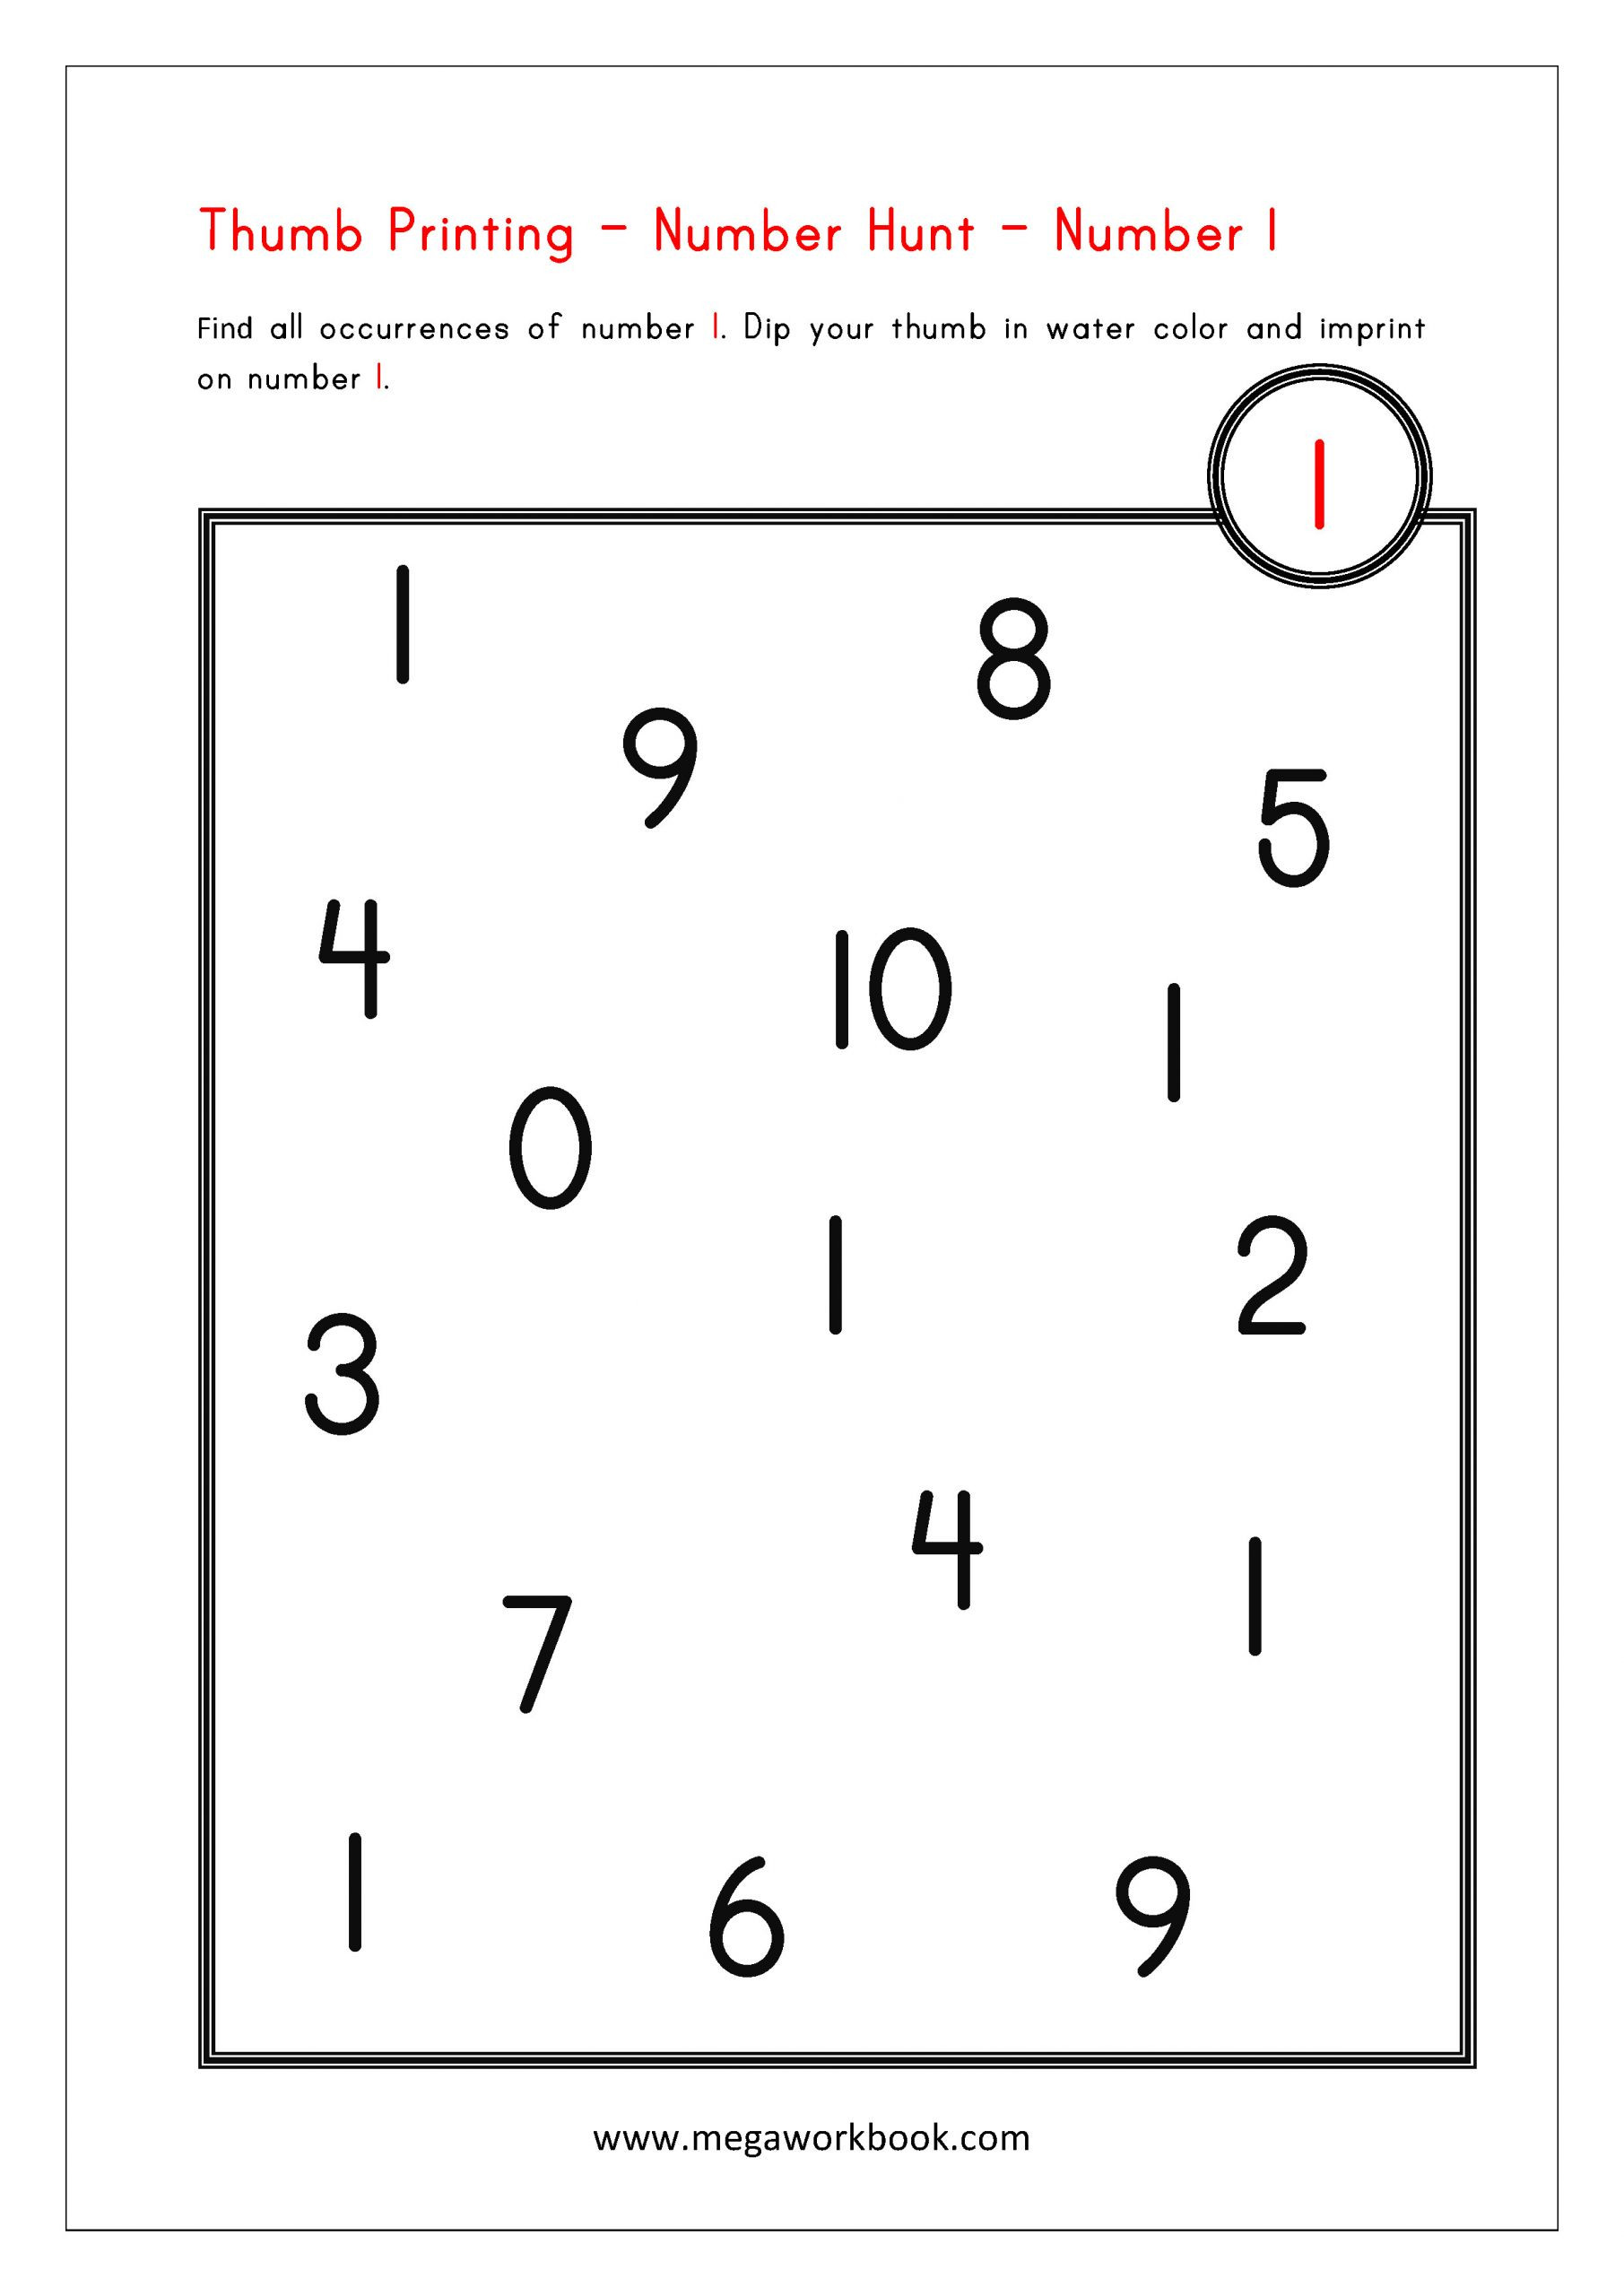 Skip Counting Worksheets First Grade 5 Free Math Worksheets Second Grade 2 Skip Counting Skip